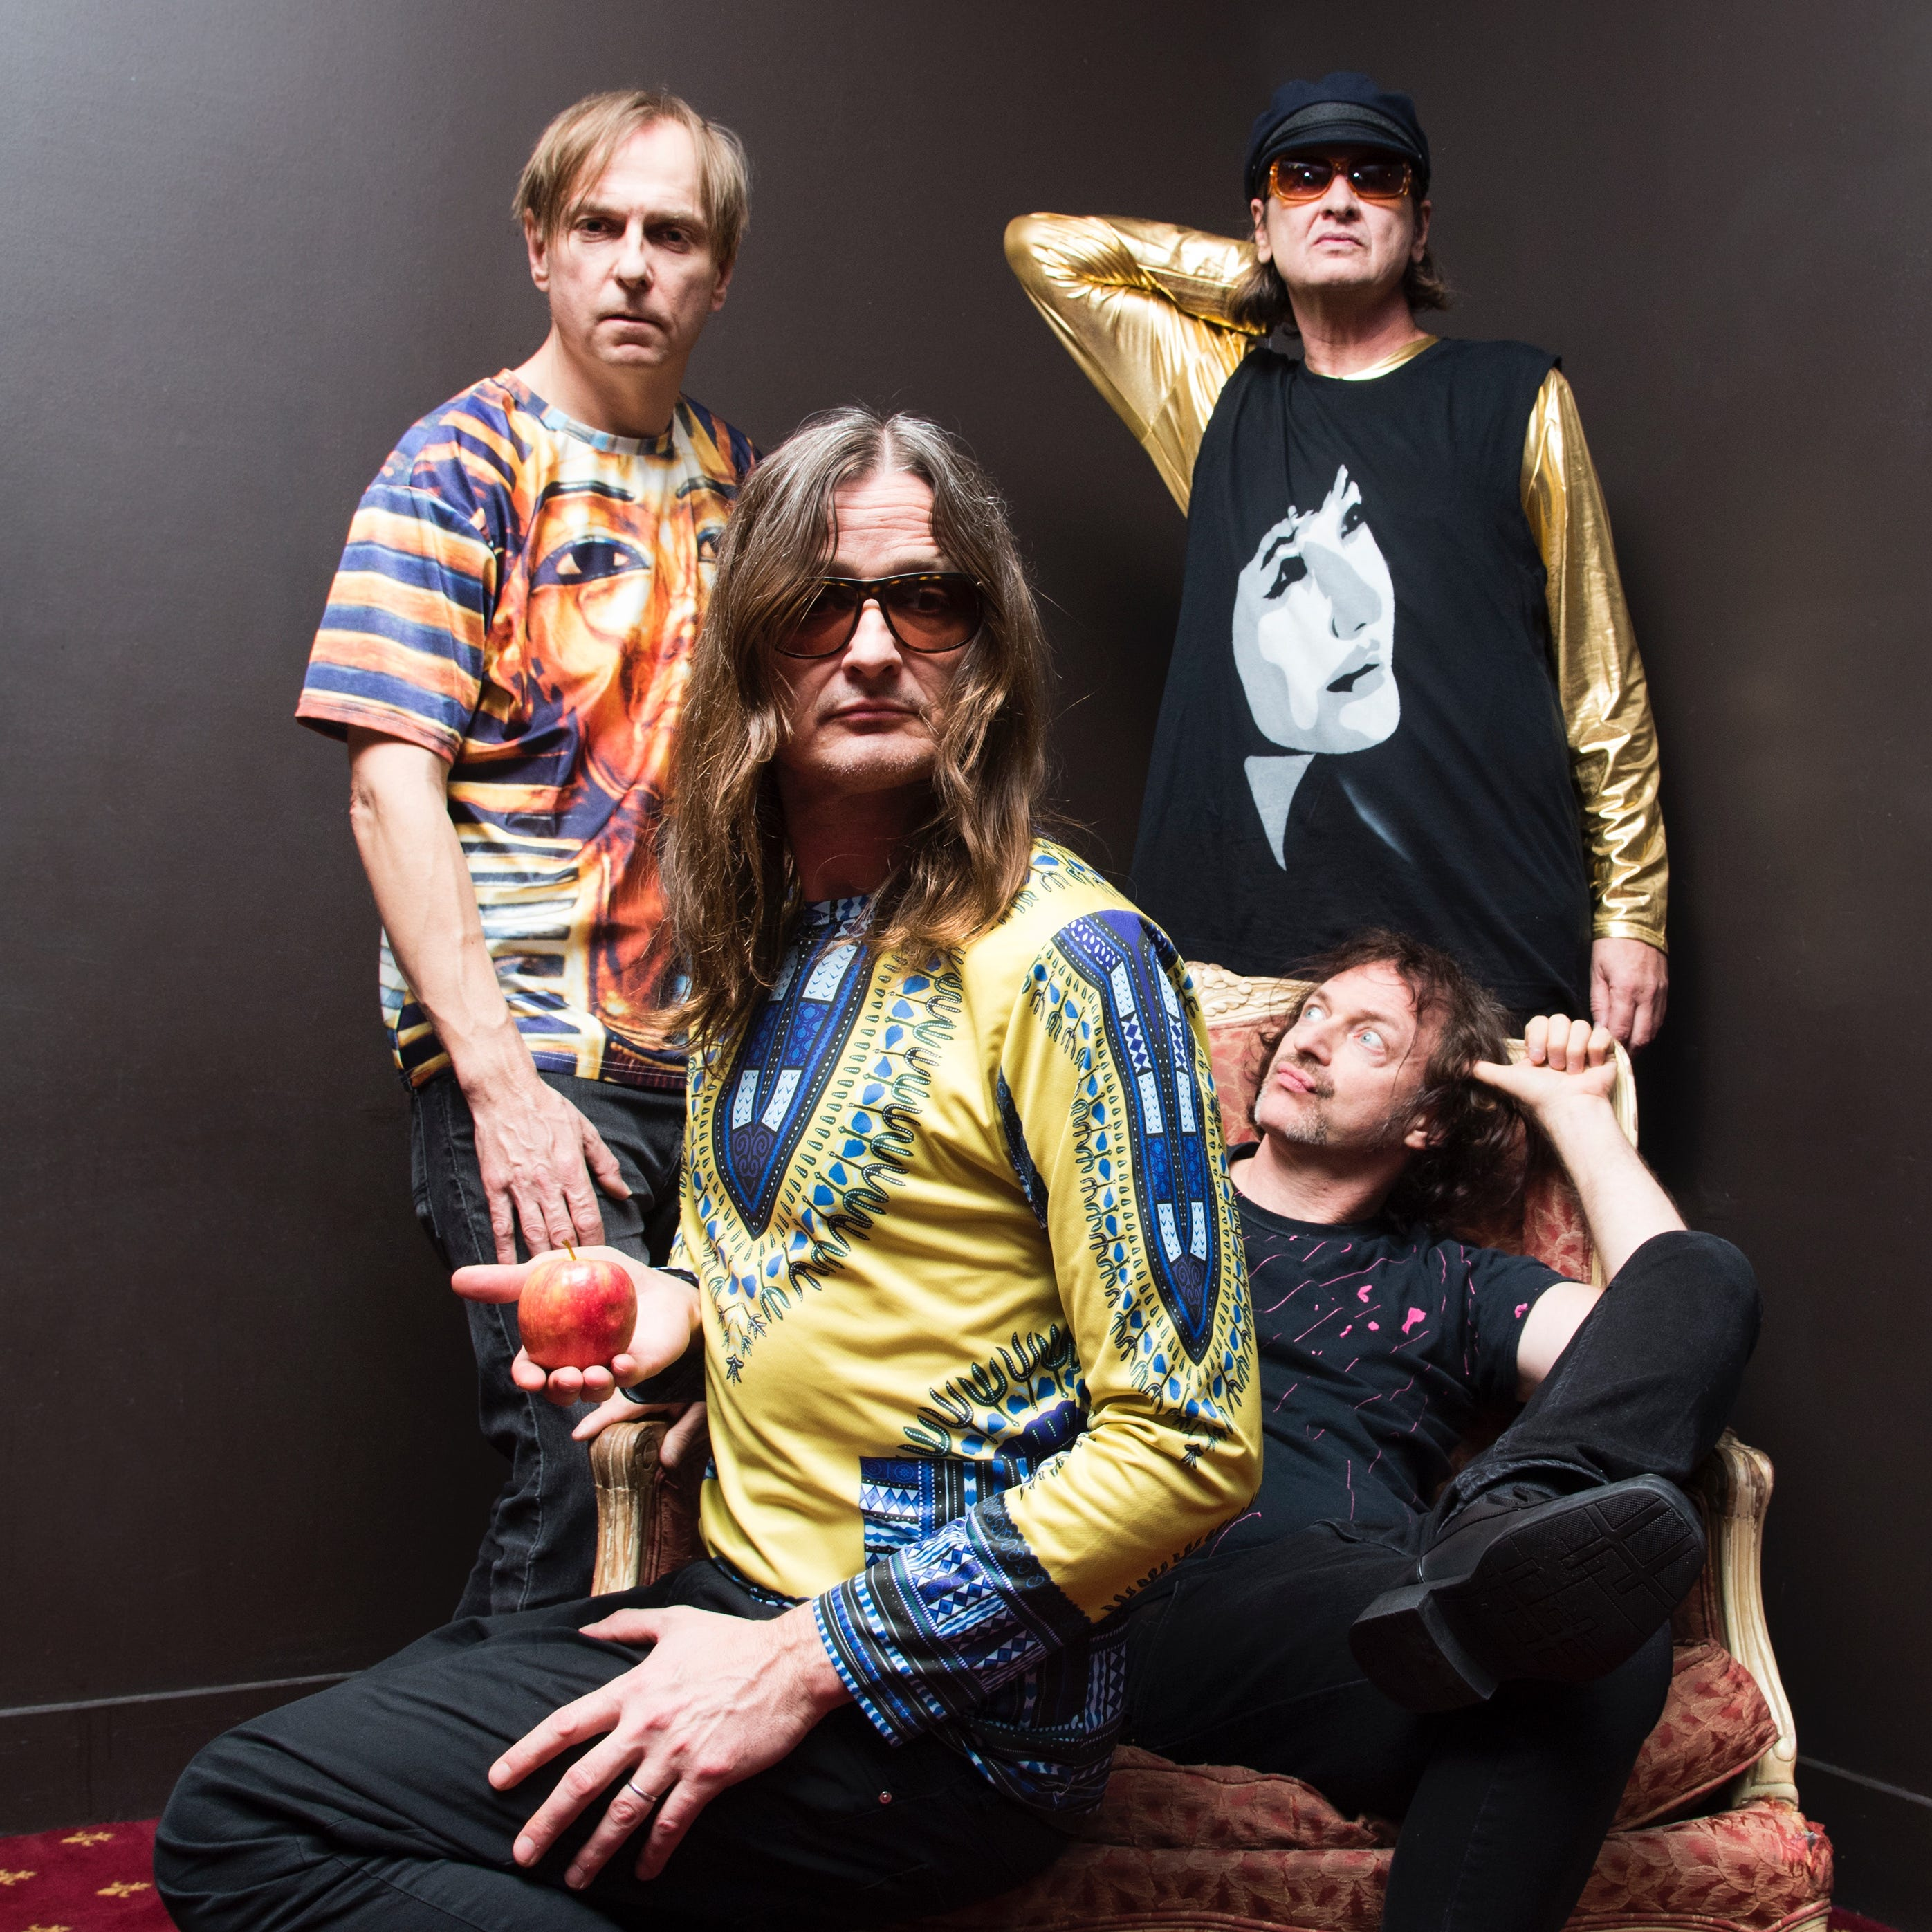 From backyard party to buddying up with Black Flag, Redd Kross bassist talks big break